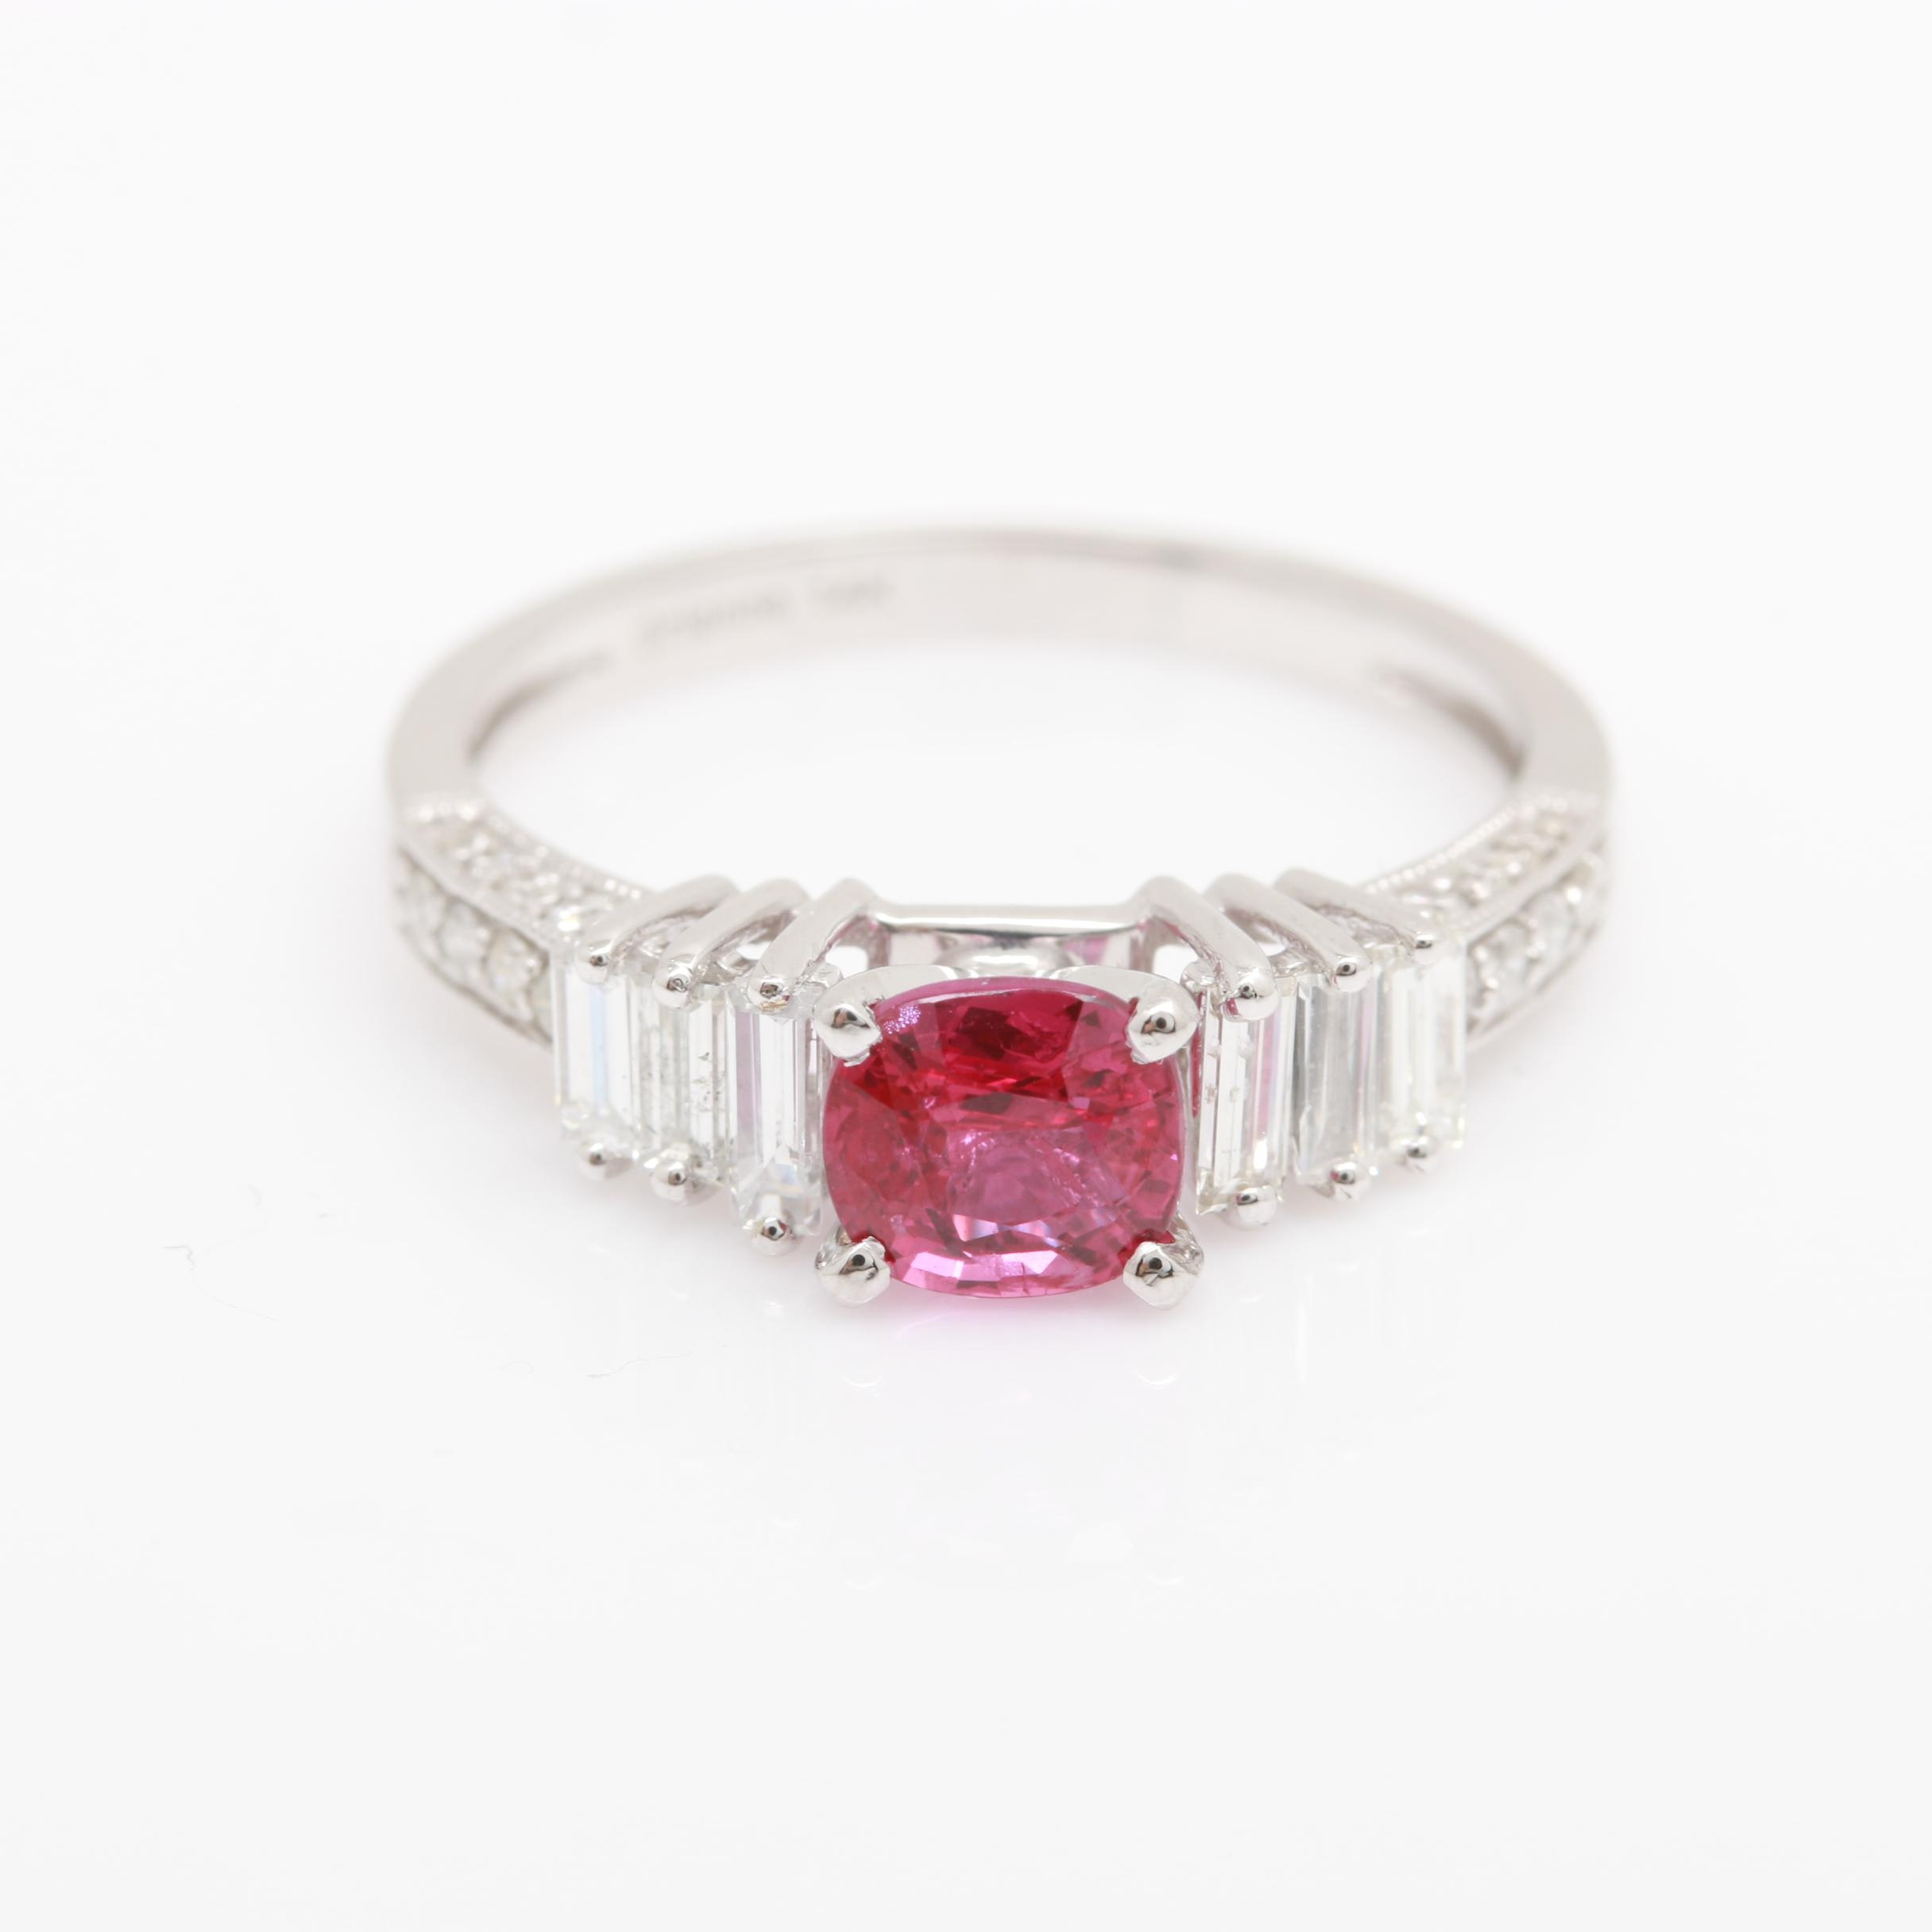 14K White Gold Untreated 1.05 CT Ruby and Diamond Ring With GIA Report